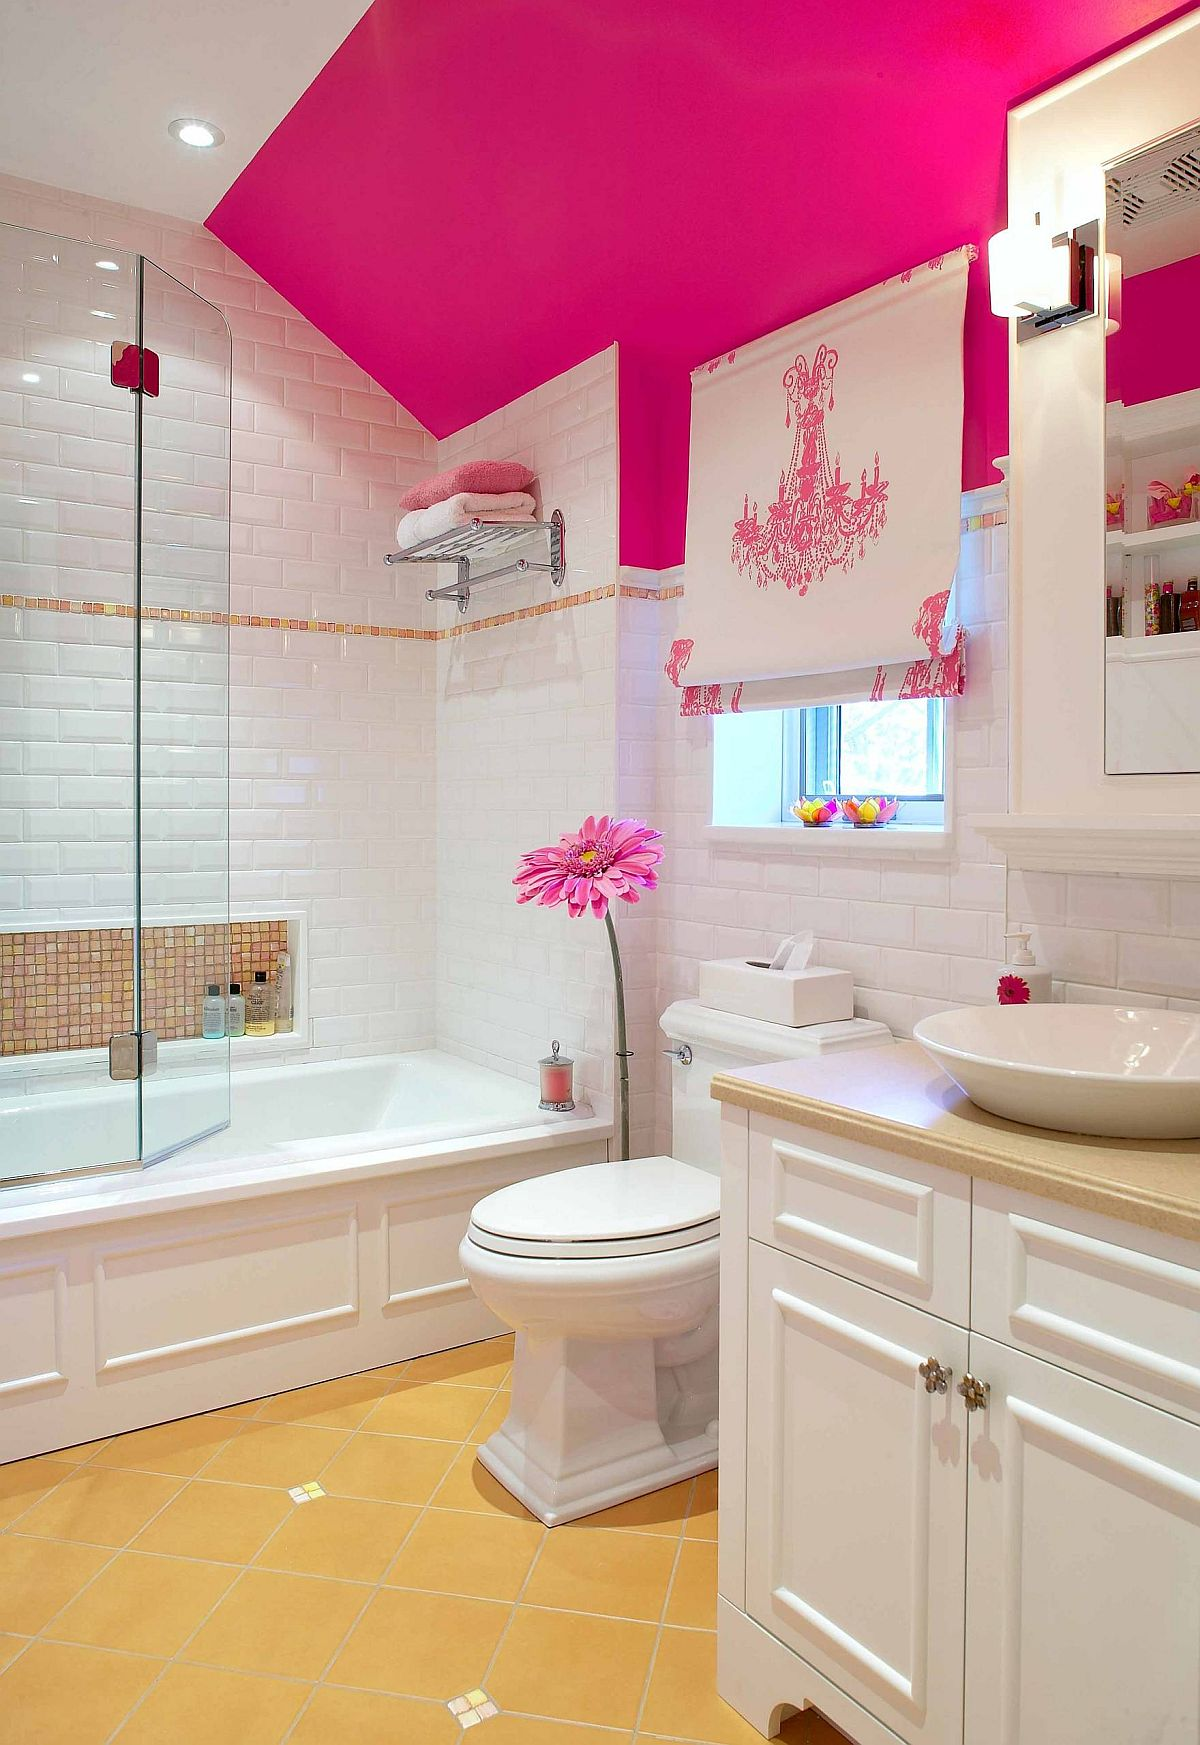 Little pops of pink accentuate it presence in this lovely modern white bathroom